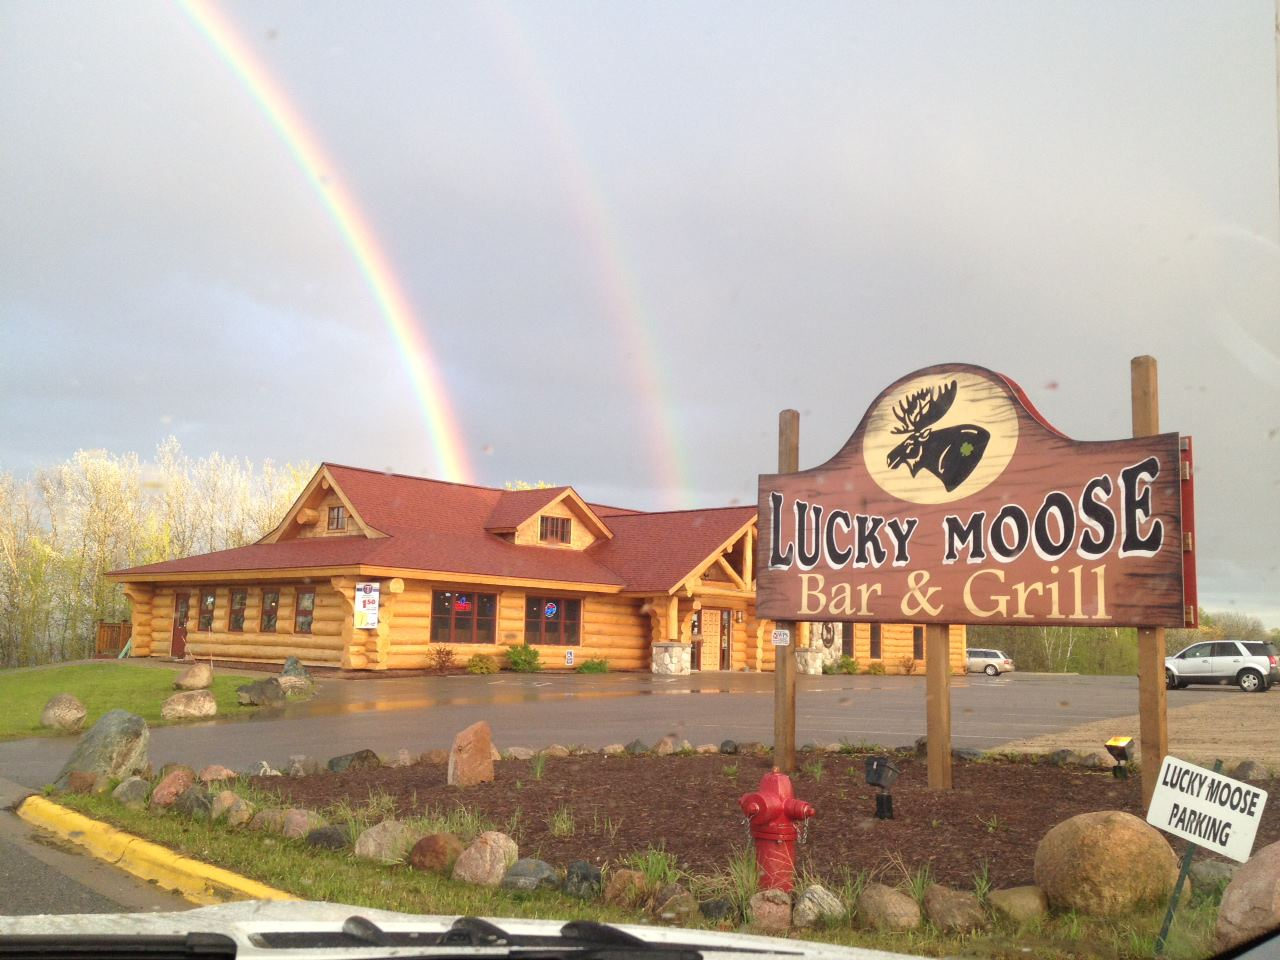 Vikings Game Day Specials at the Lucky Moose Bar & Grill in Walker, MN